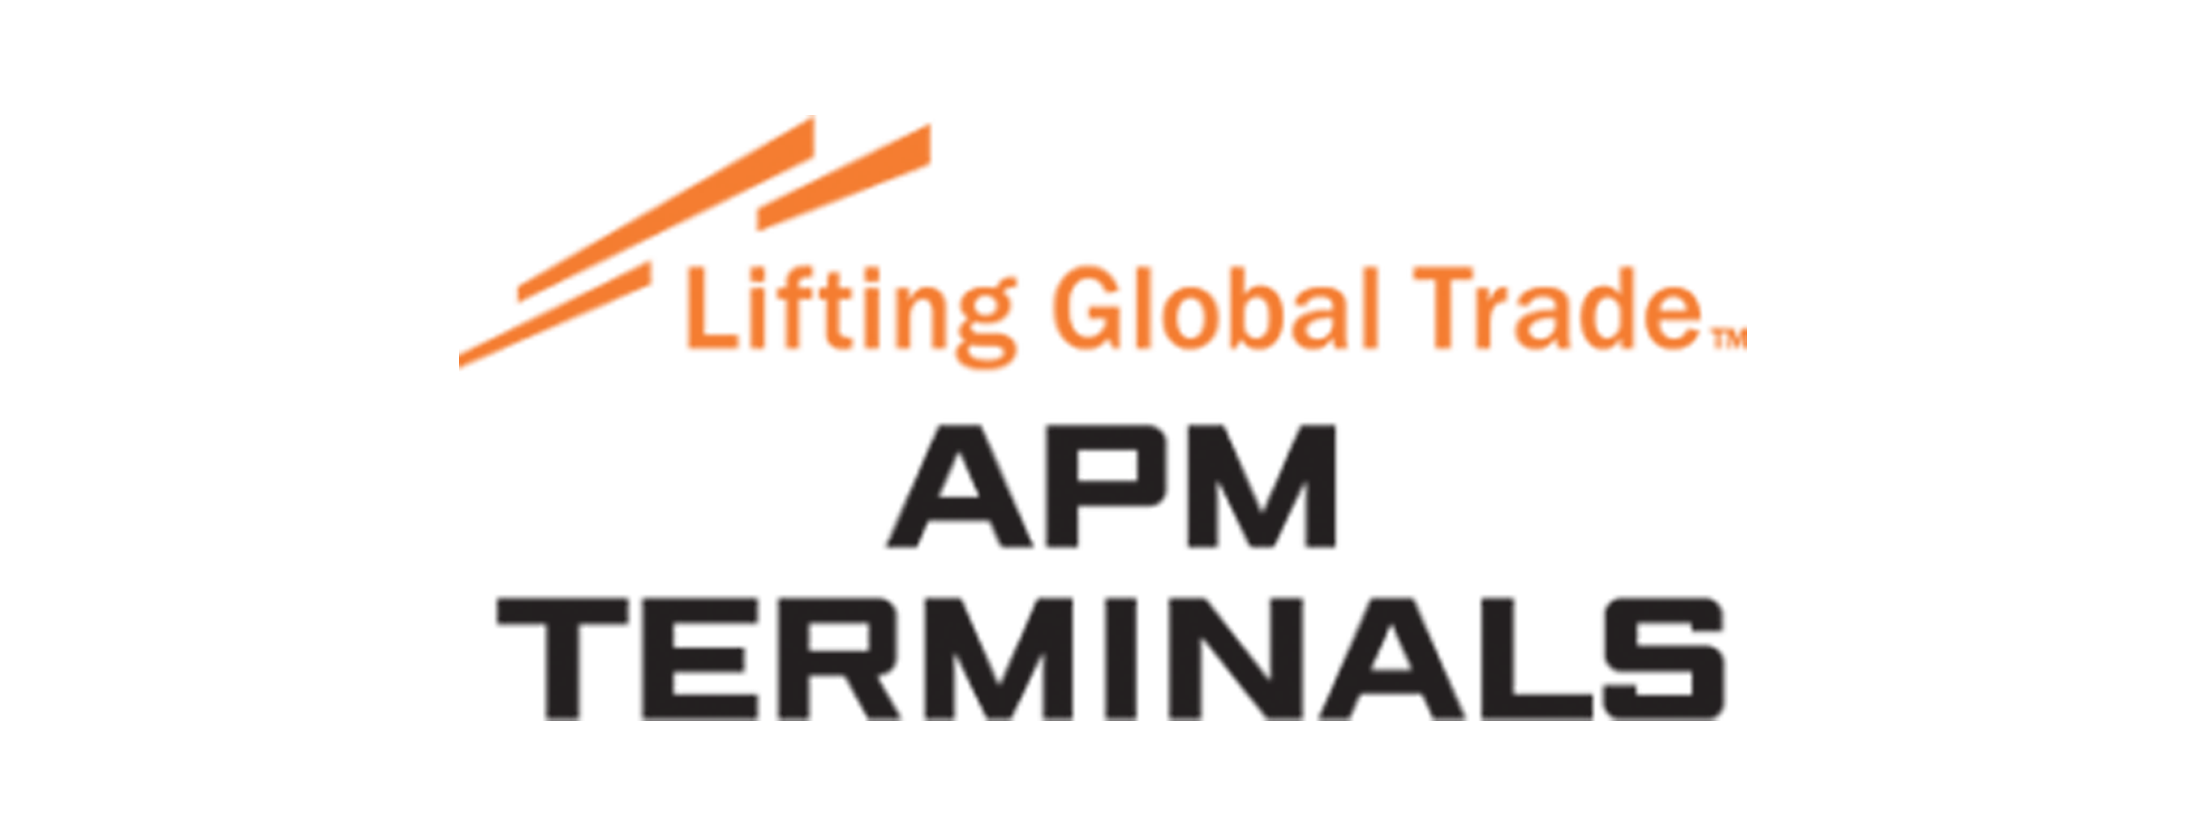 https://allyourbi.nl/wp-content/uploads/2020/09/APM-Terminals2.png